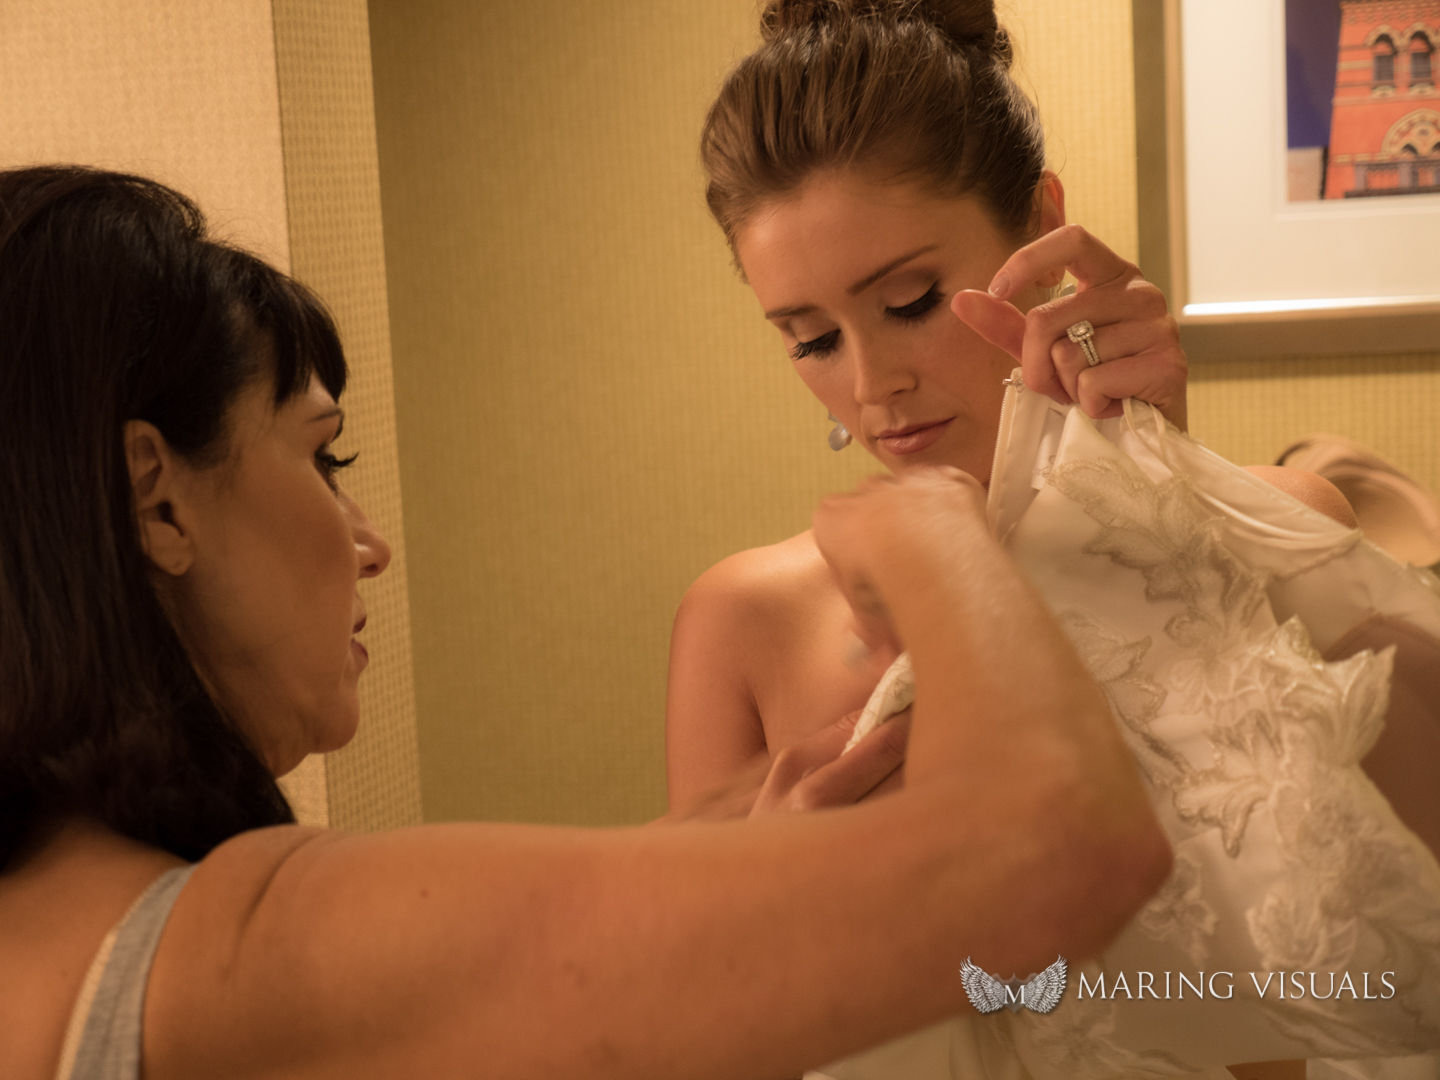 Slipping on the Wedding Gown